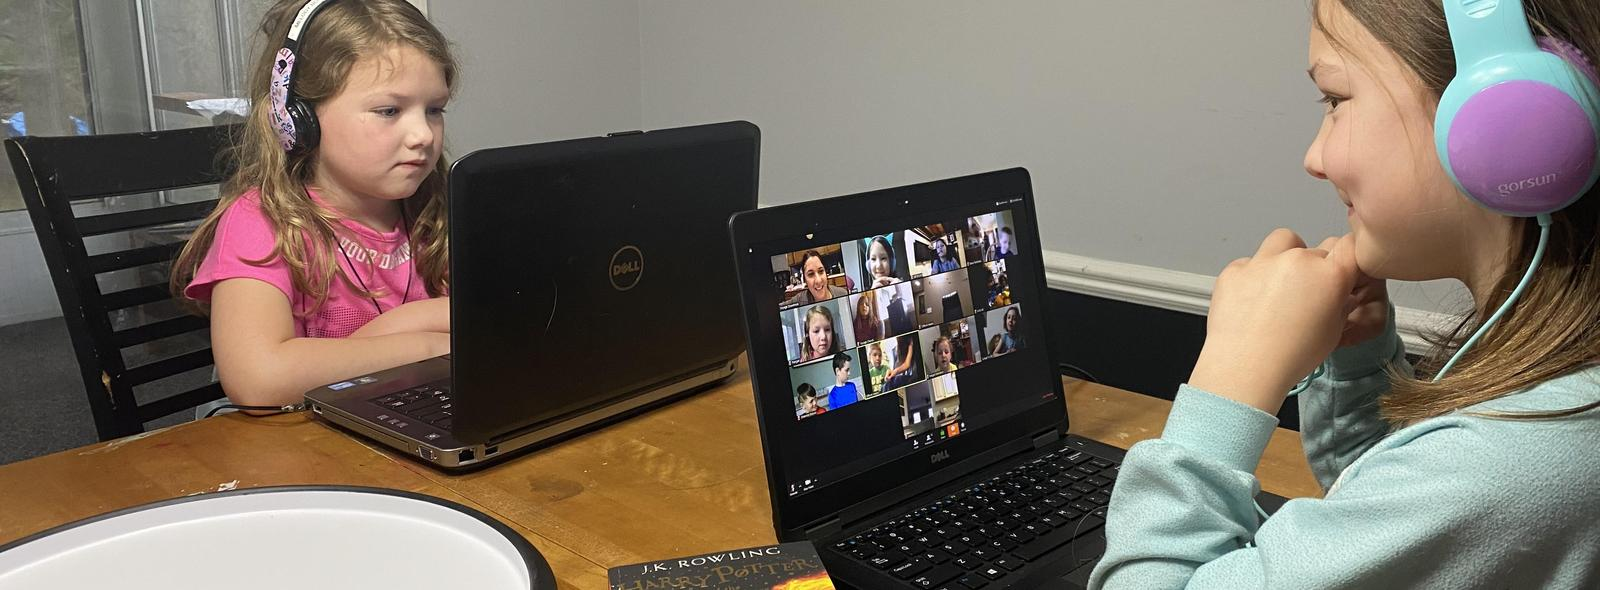 alamo students learning at home on their computers